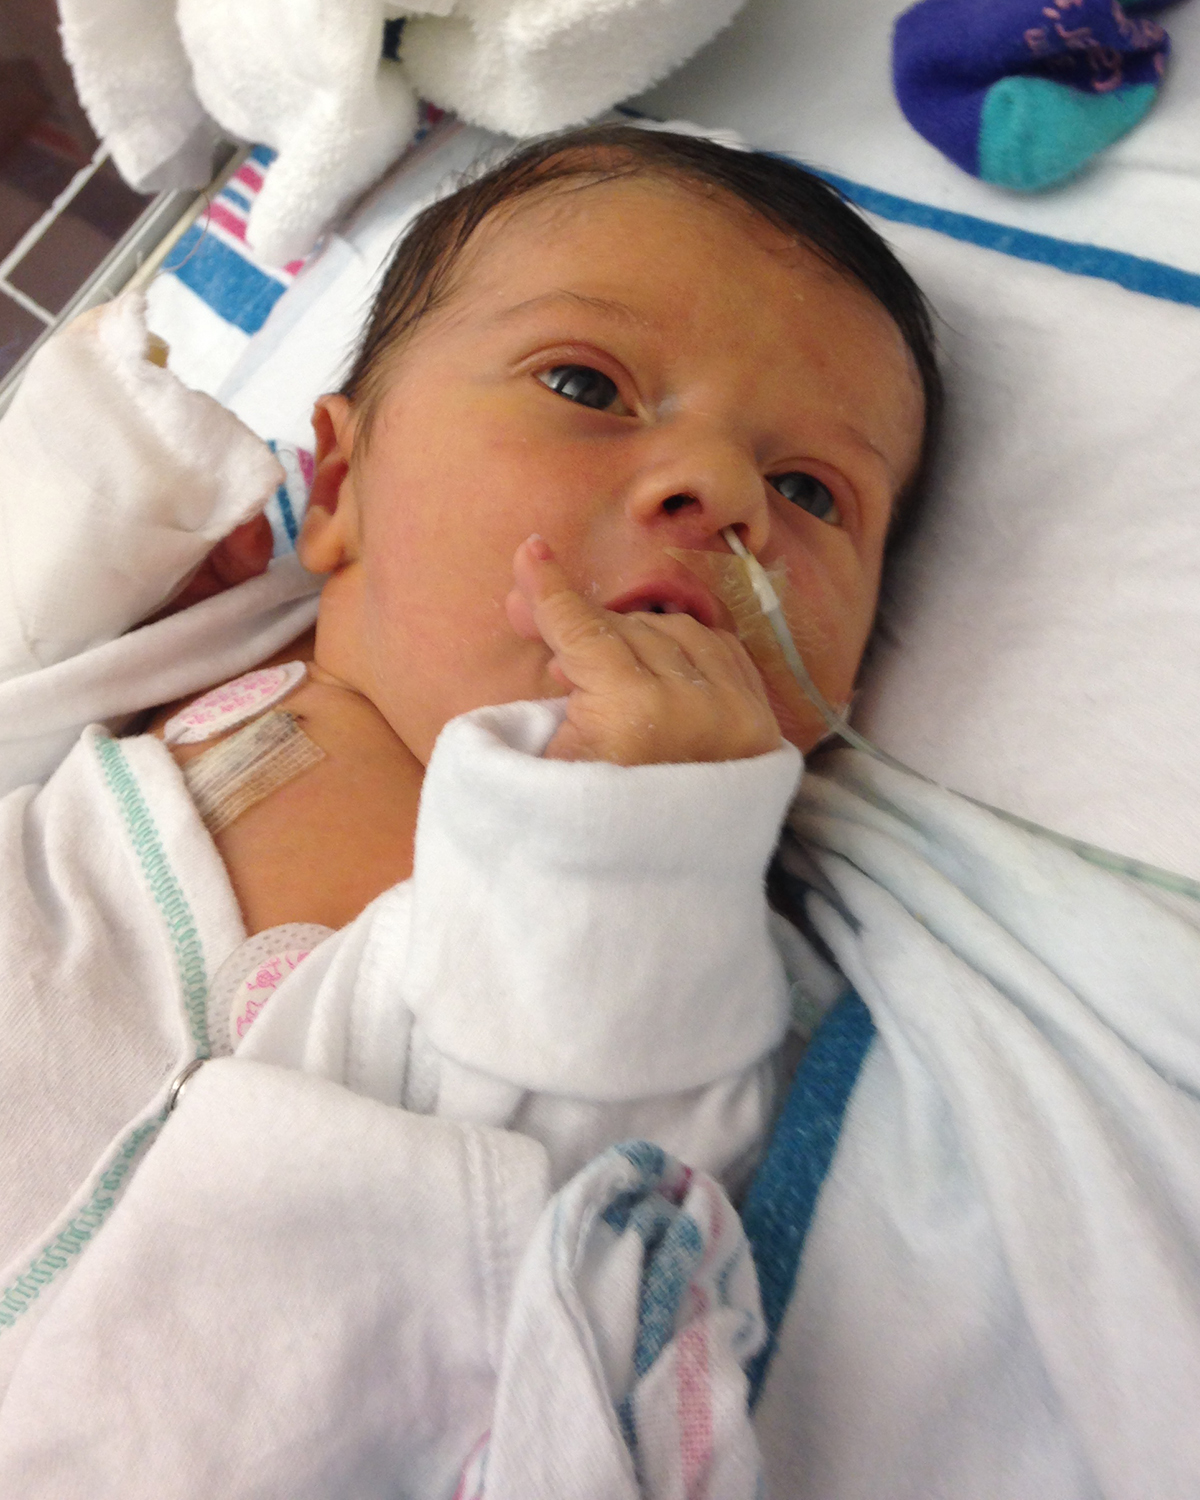 Saving a newborn with the support of 3D Printing | Materialise